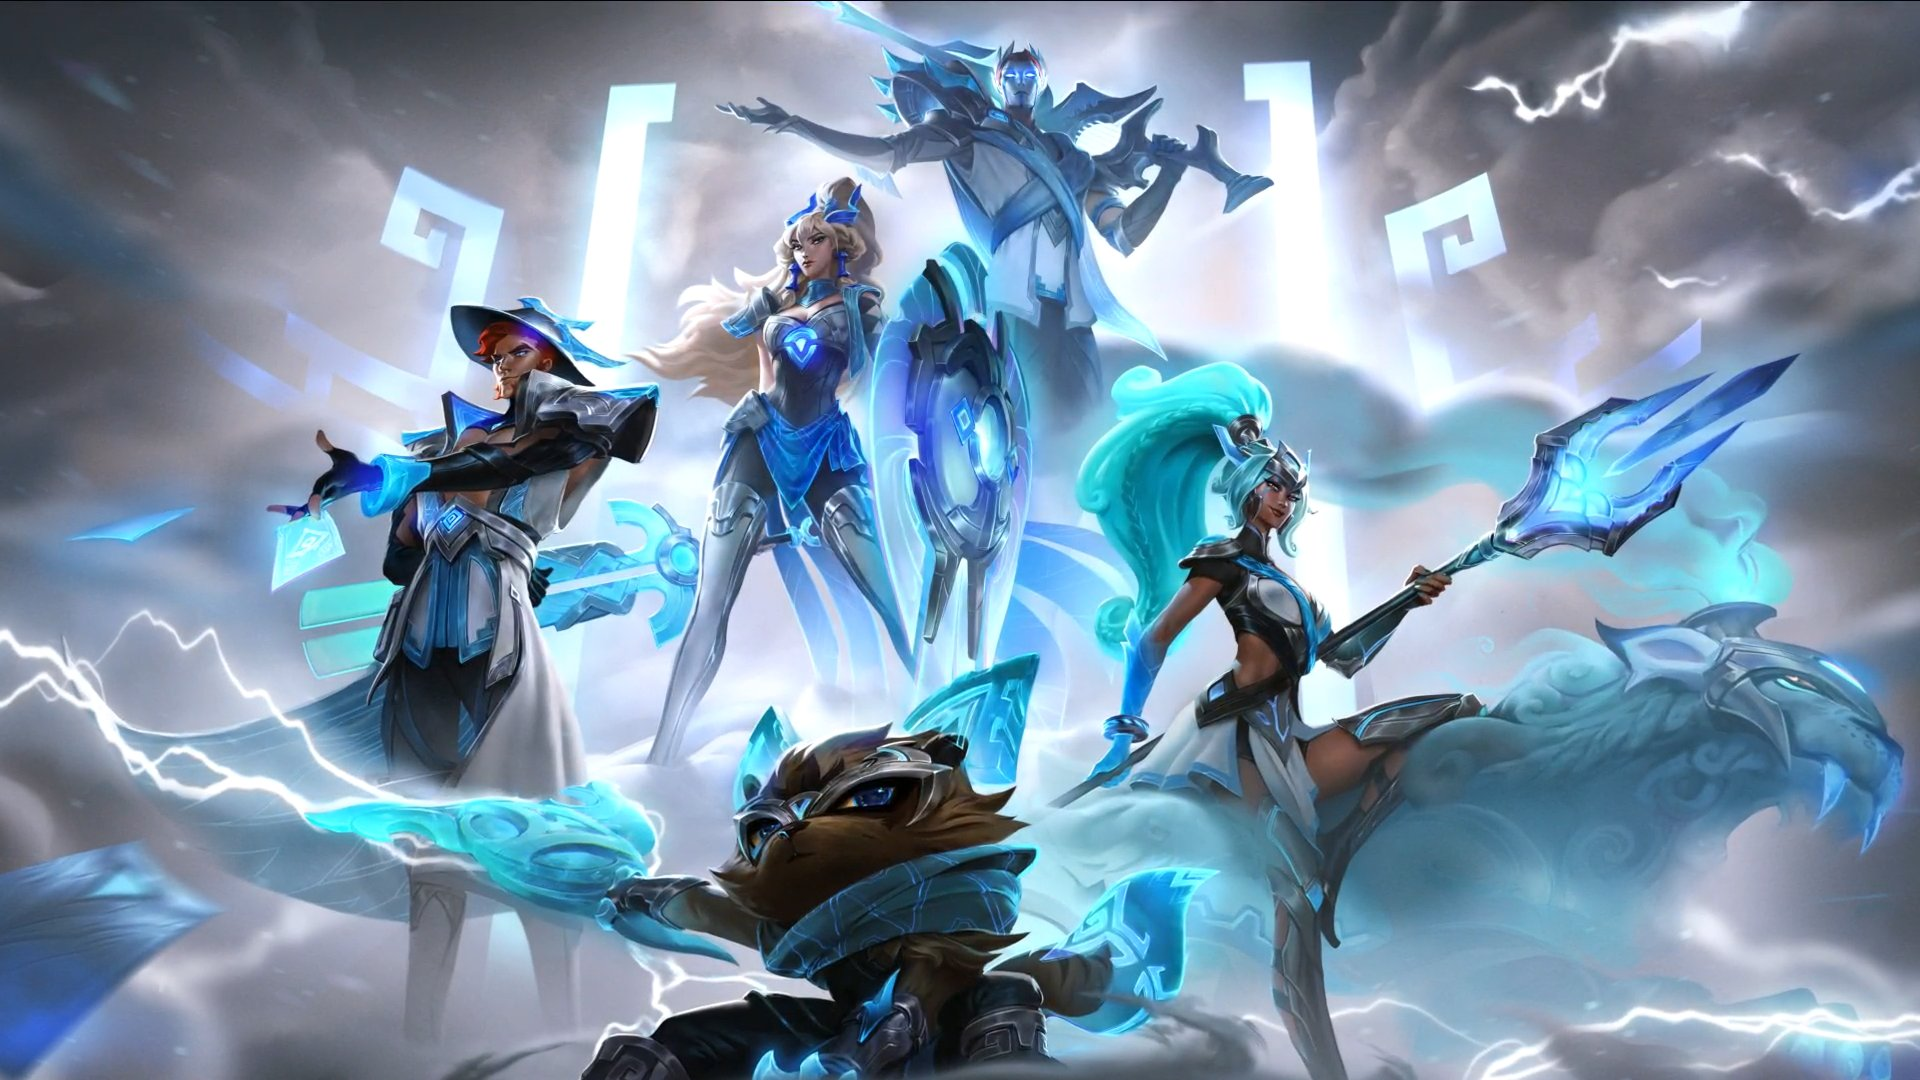 skins-damwon-gaming-worlds-league-legends-kennen-leona-jhin-nidalee-twisted-fate